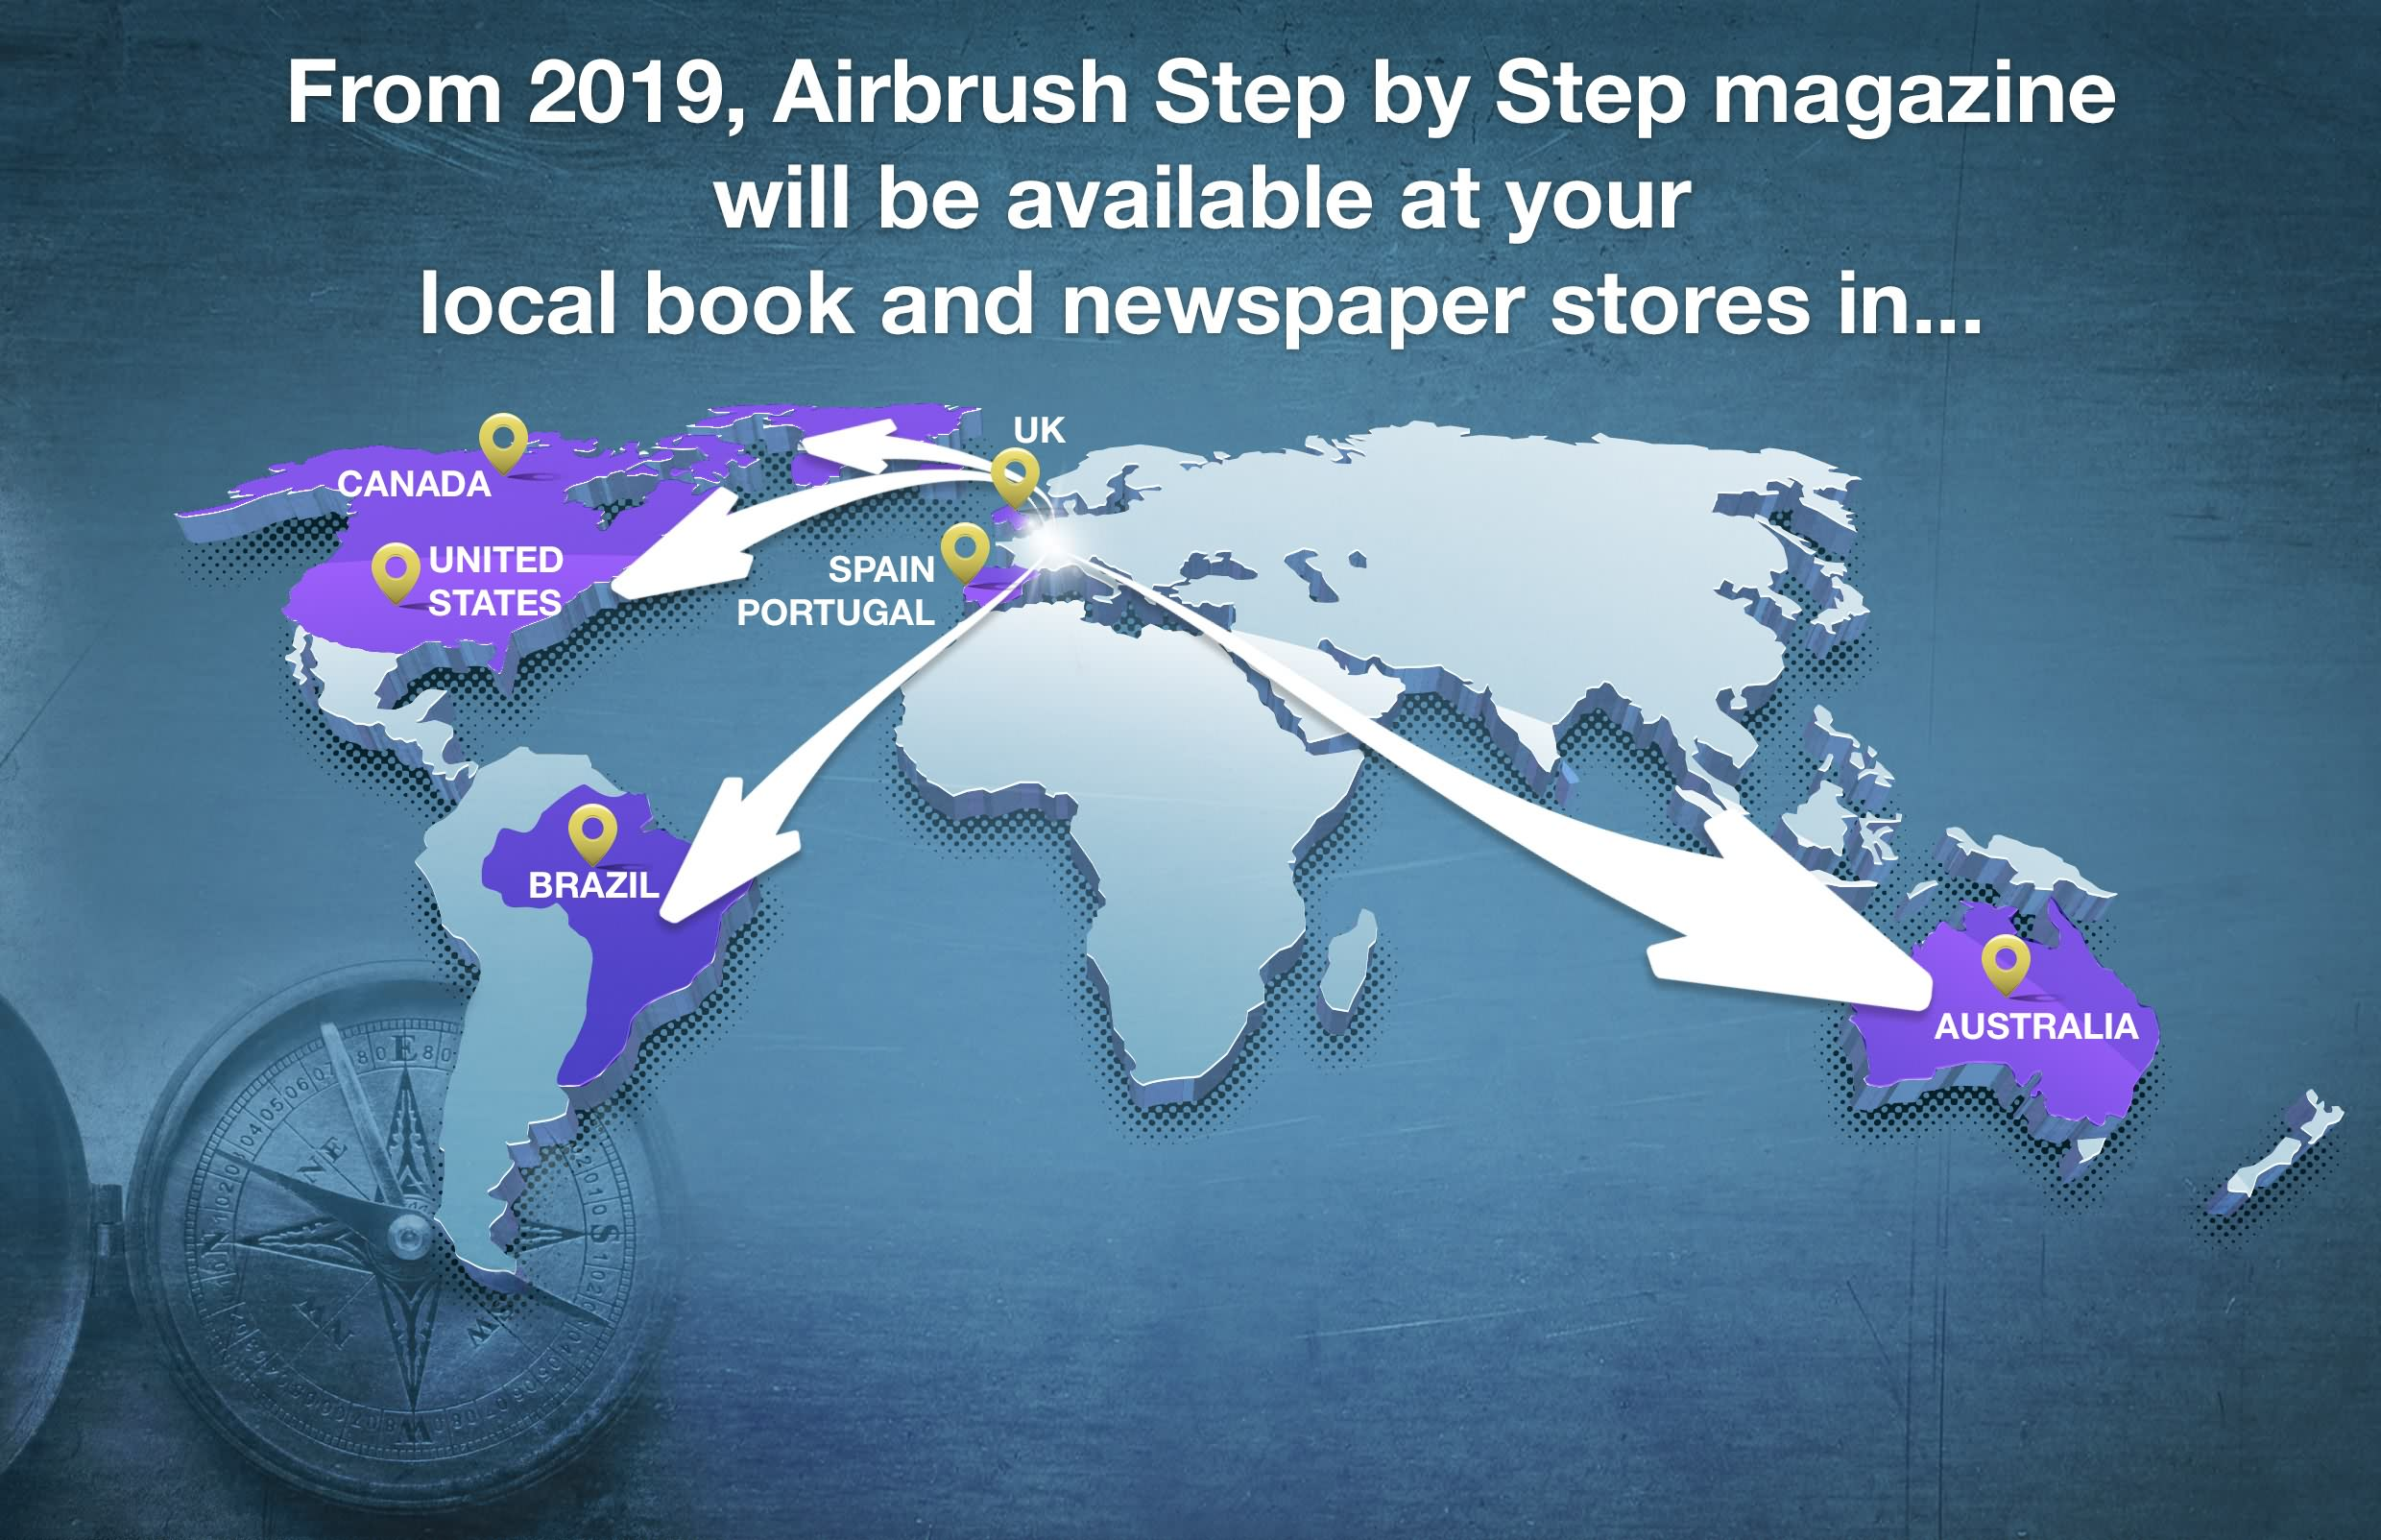 Airbrush Step by Step magazine available in book stores in 7 countries from 2019